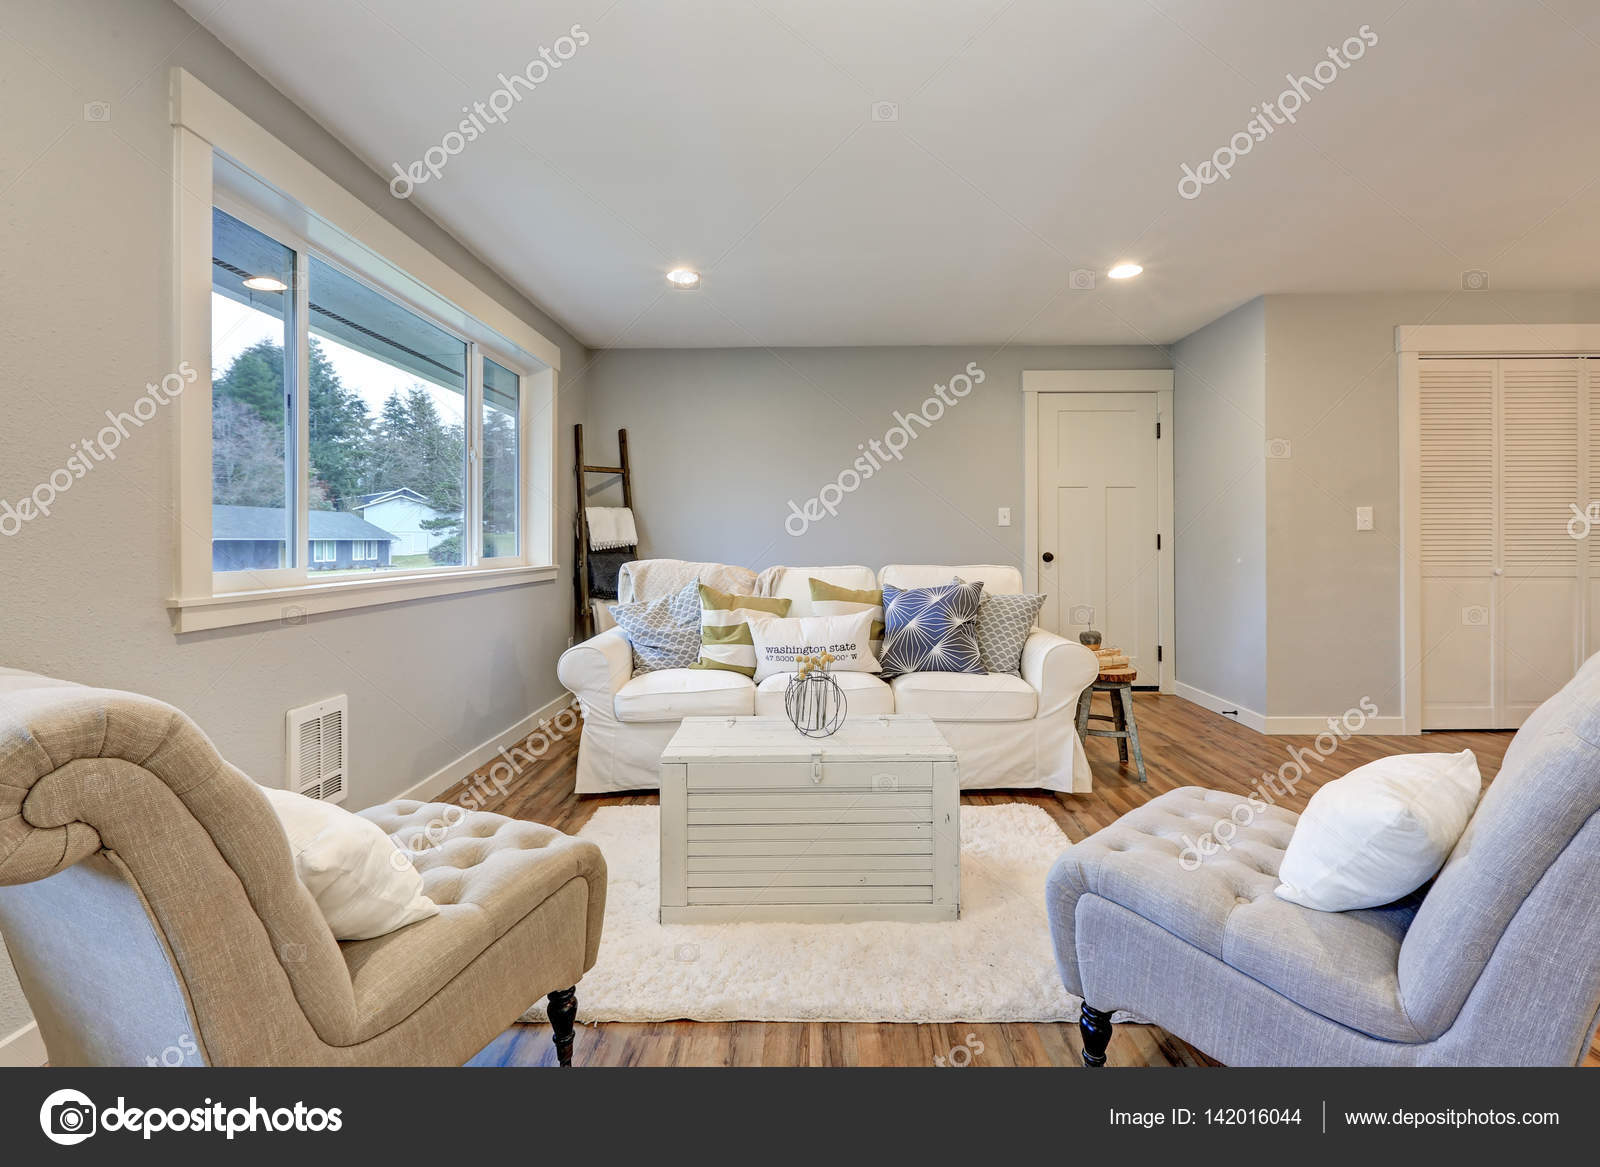 Cozy Living Room Space With Soft Blue Grey Walls U2014 Stock Photo #142016044 Part 97